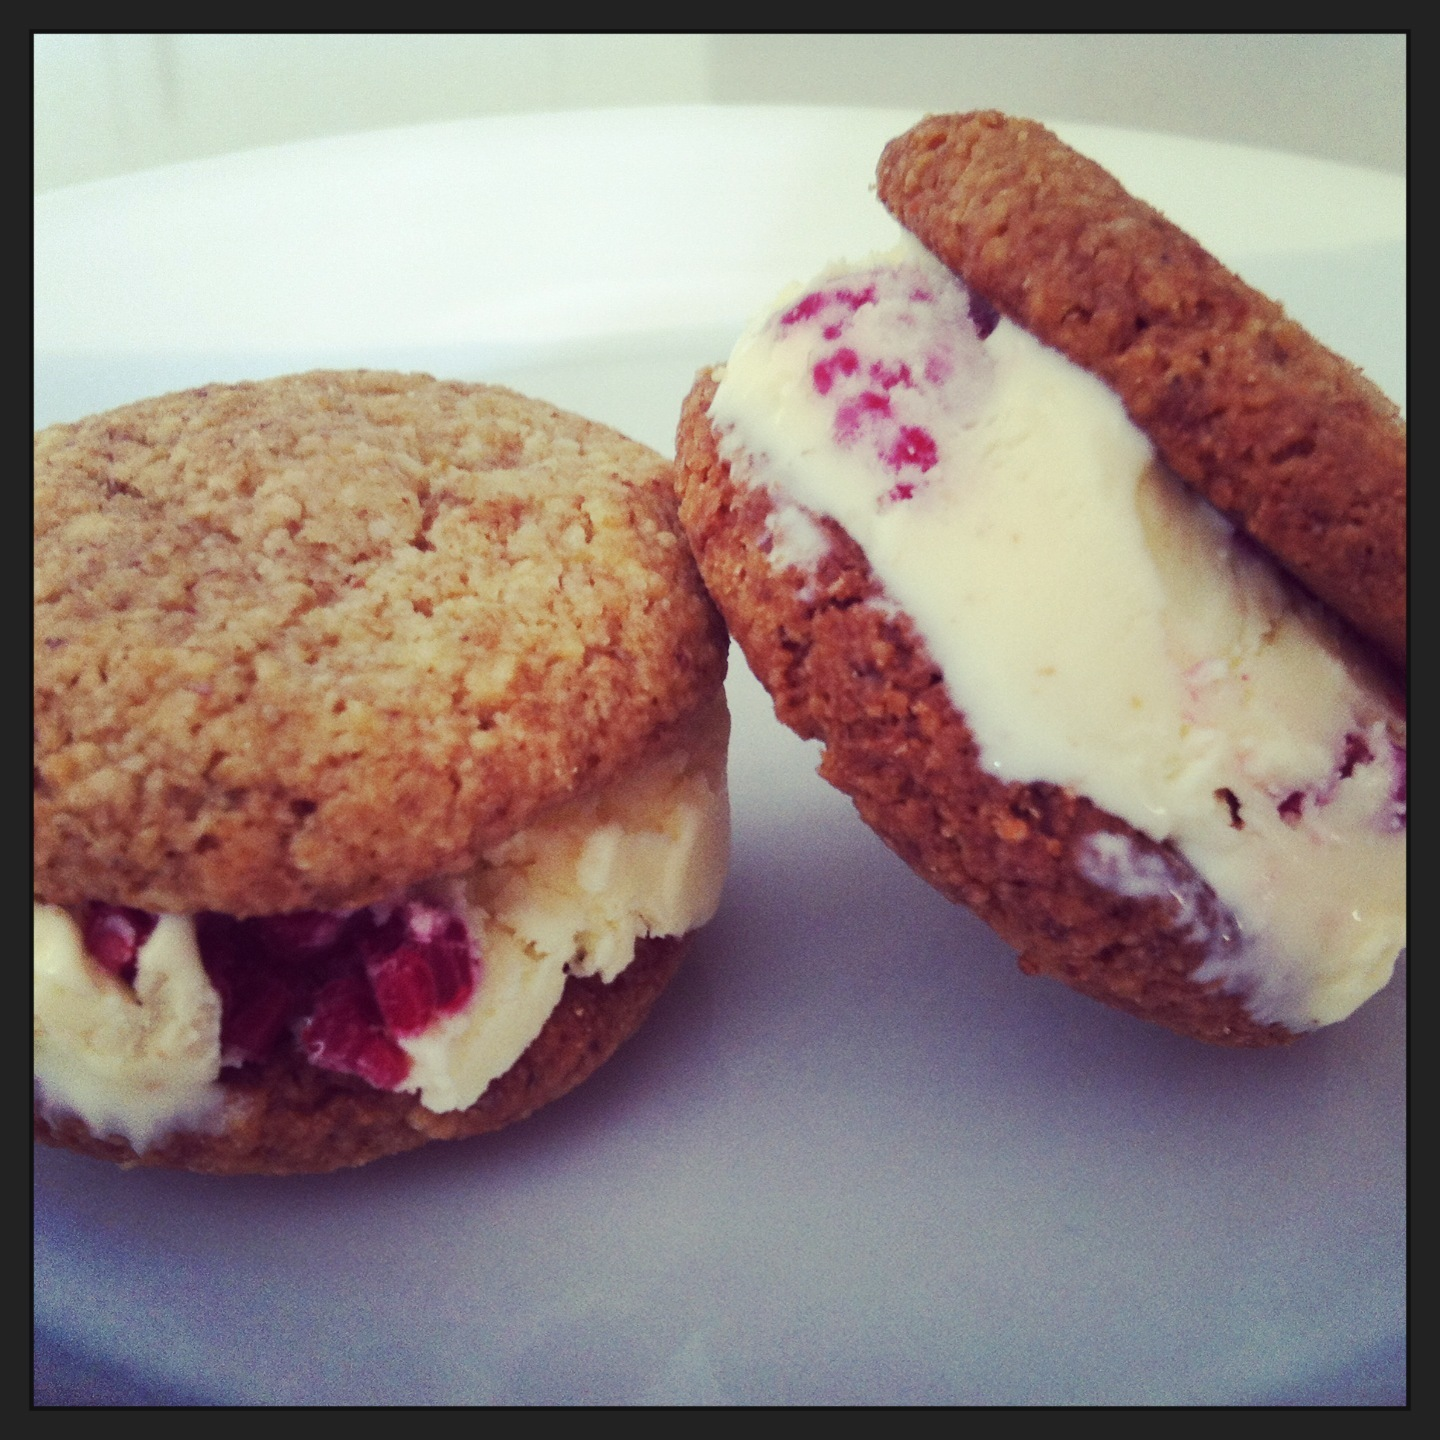 Raspberry cheesecake ice cream sandwich (with gluten free coconut and almond biscuits)